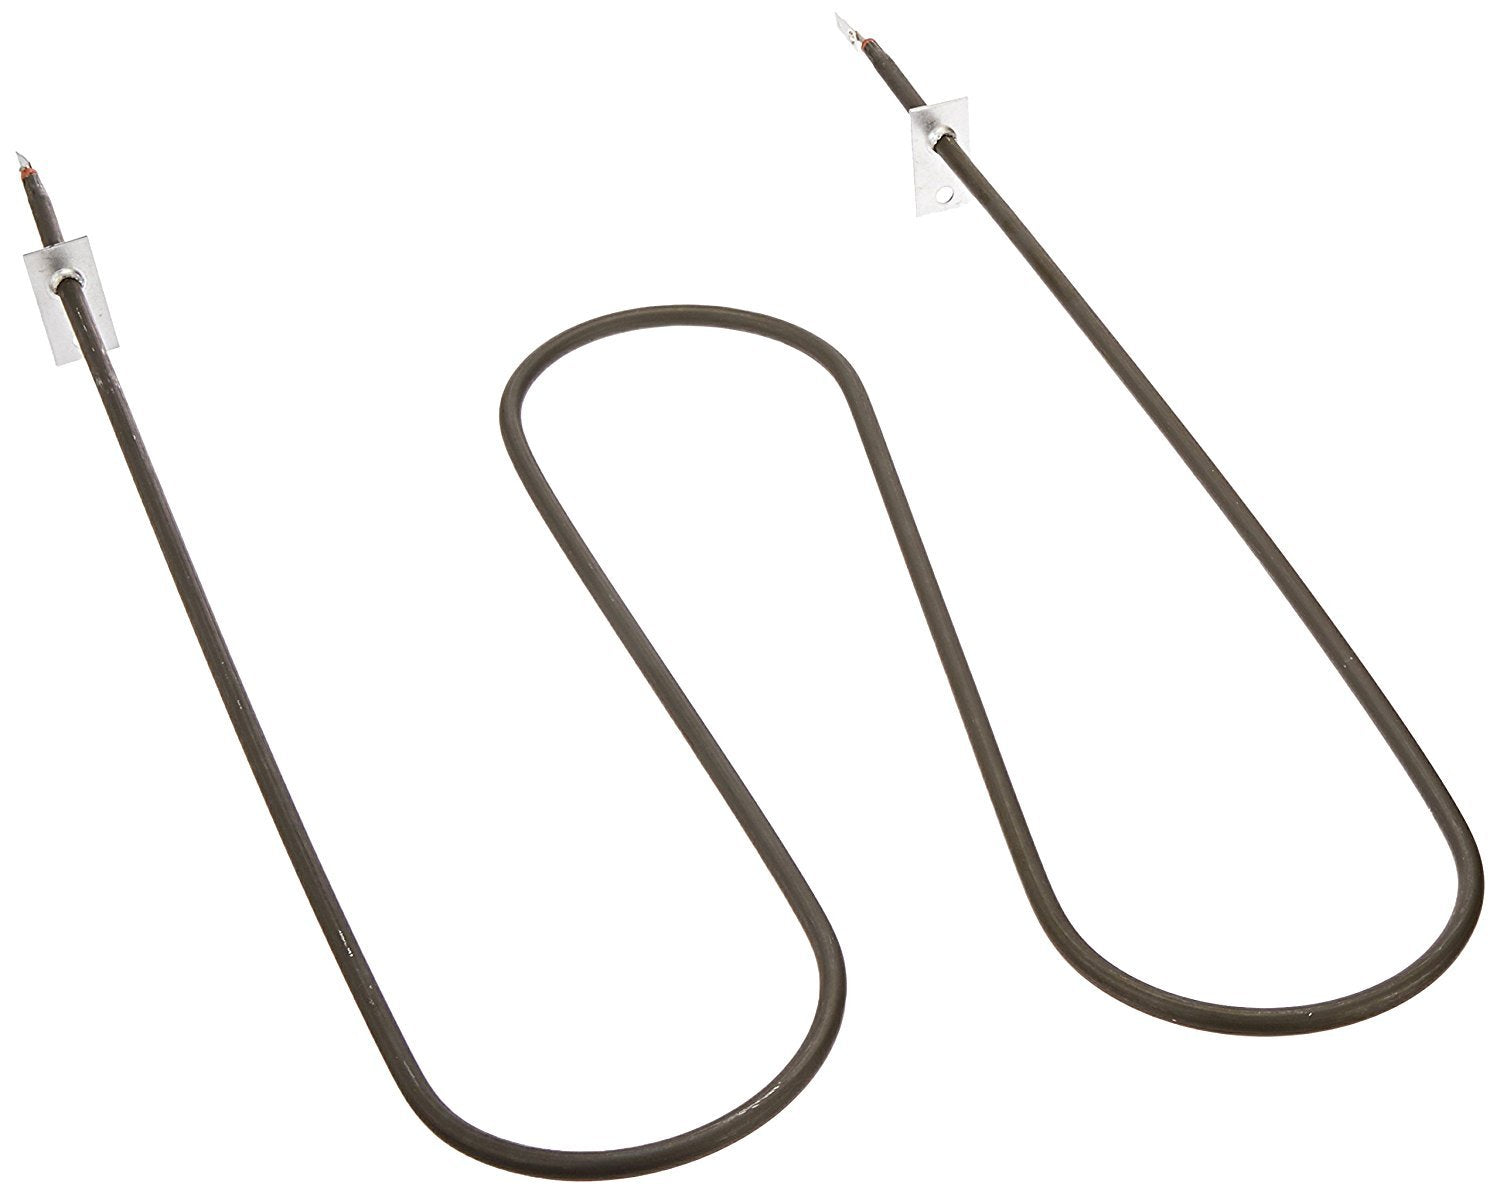 Frigidaire FEF326ASM Oven Broil Element Replacement